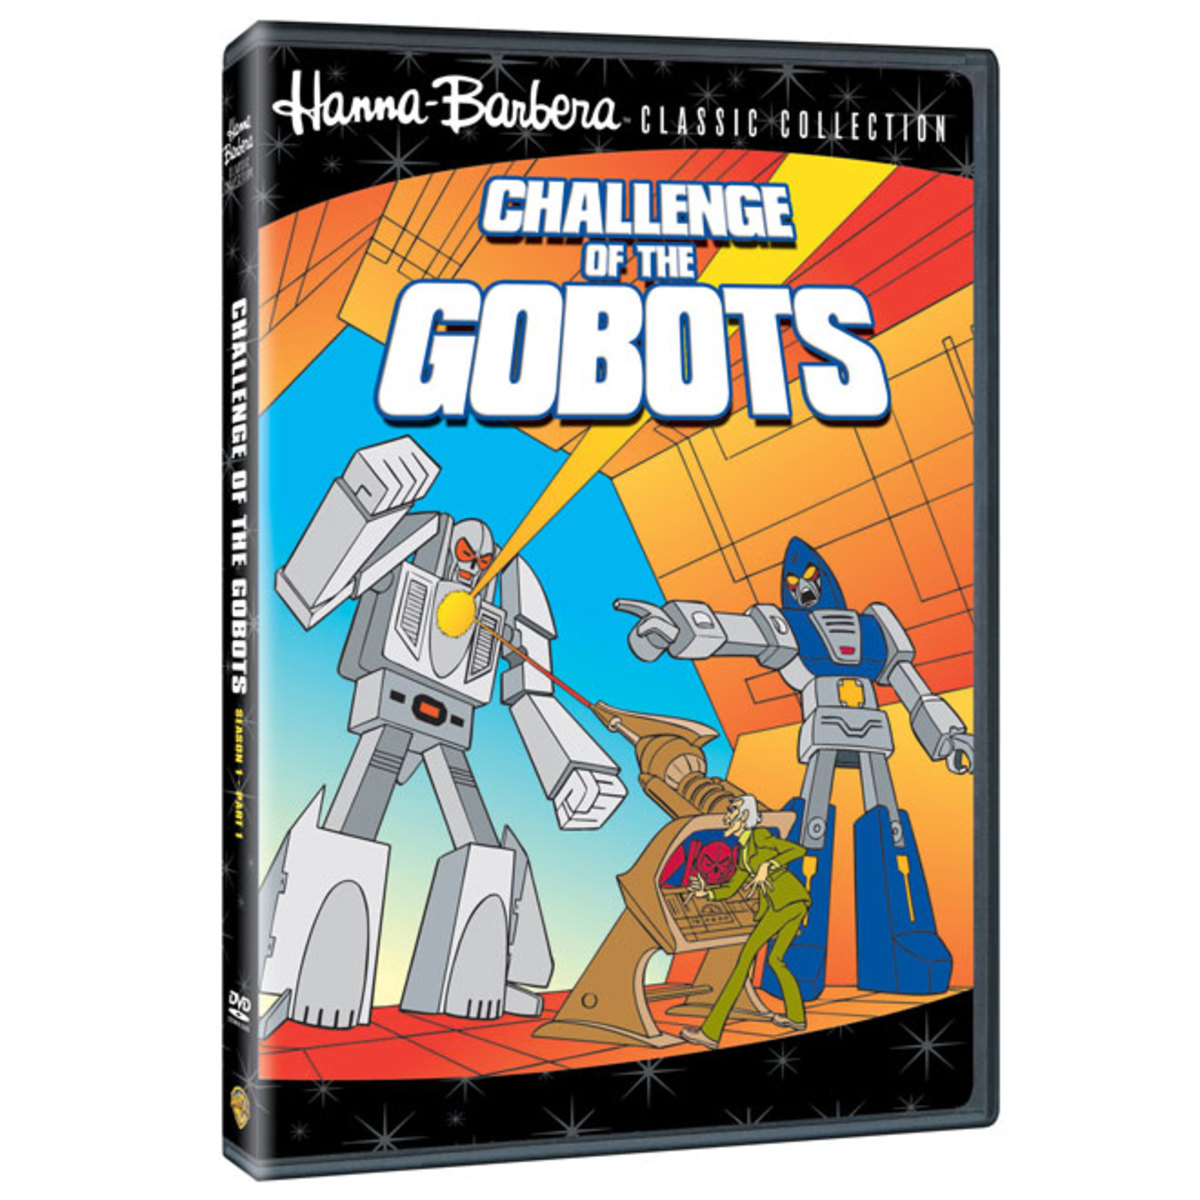 Gobots are Still Around